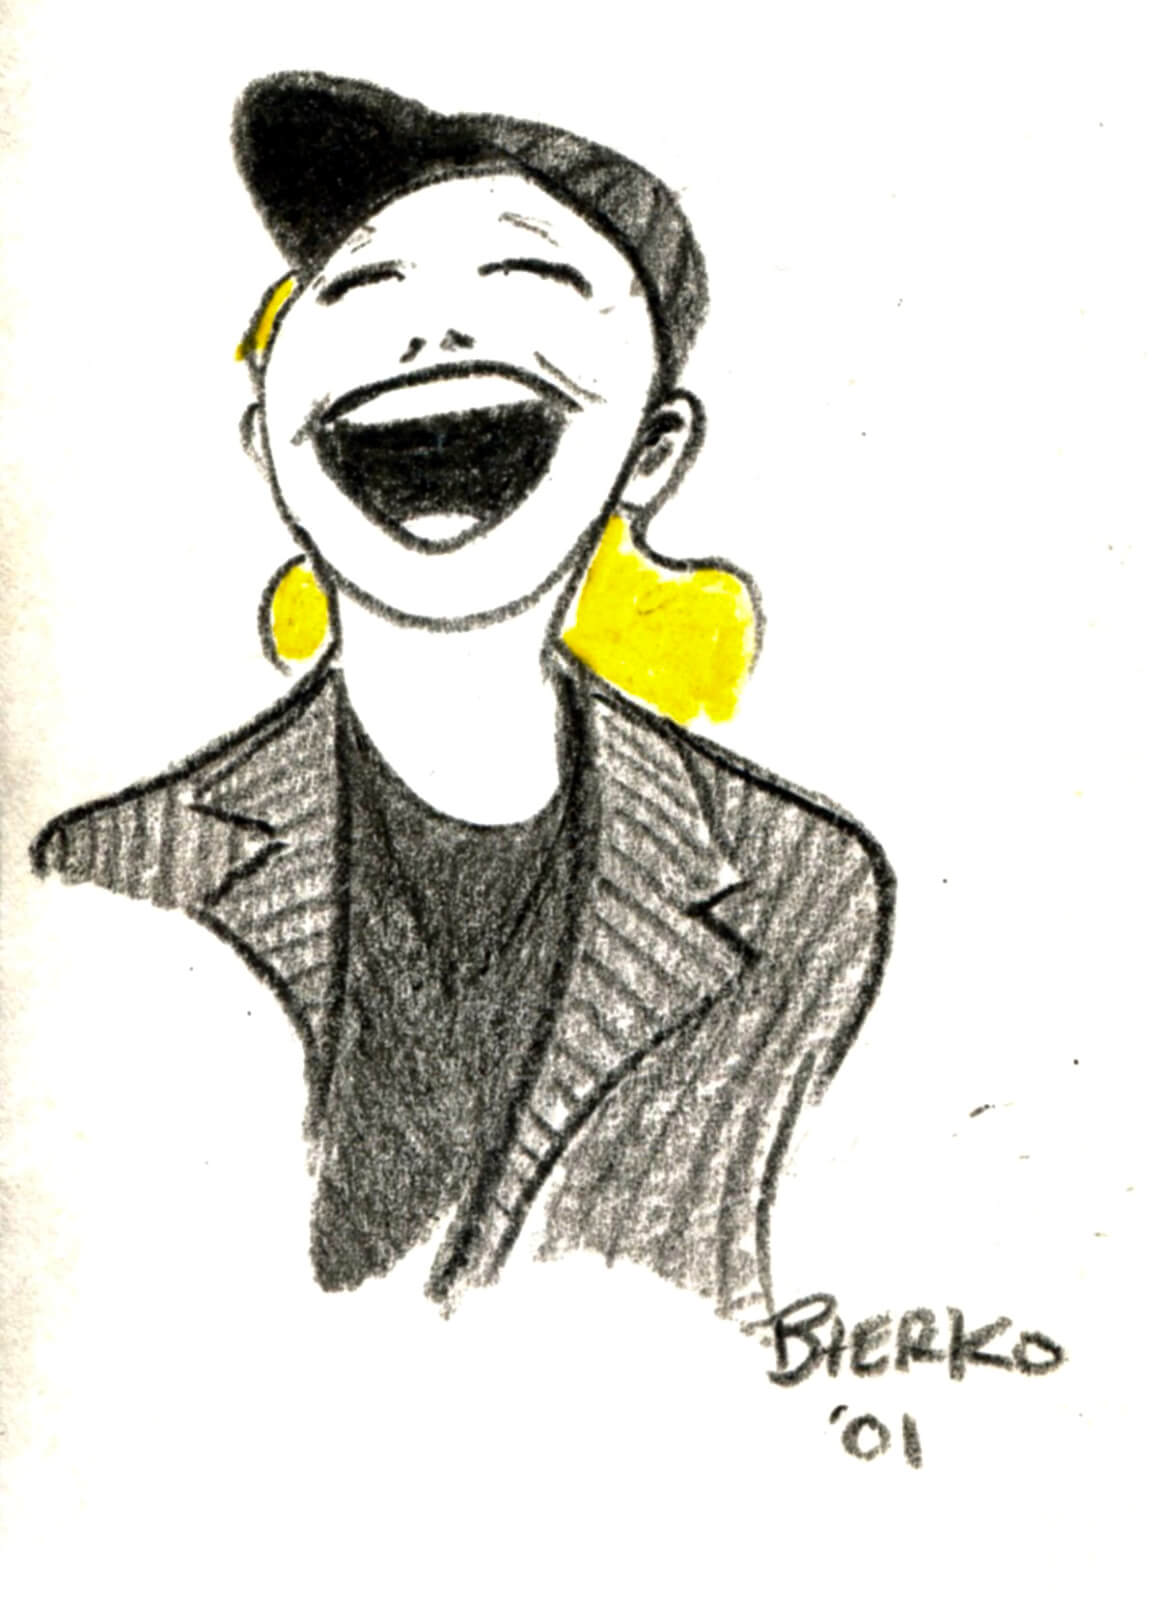 Craig Bierko's charcoal drawing of Susan Stroman: shown in an Al Hirshfeld style drawing, wearing signature black suit, black baseball hat, and sporting blonde hair while laughing.